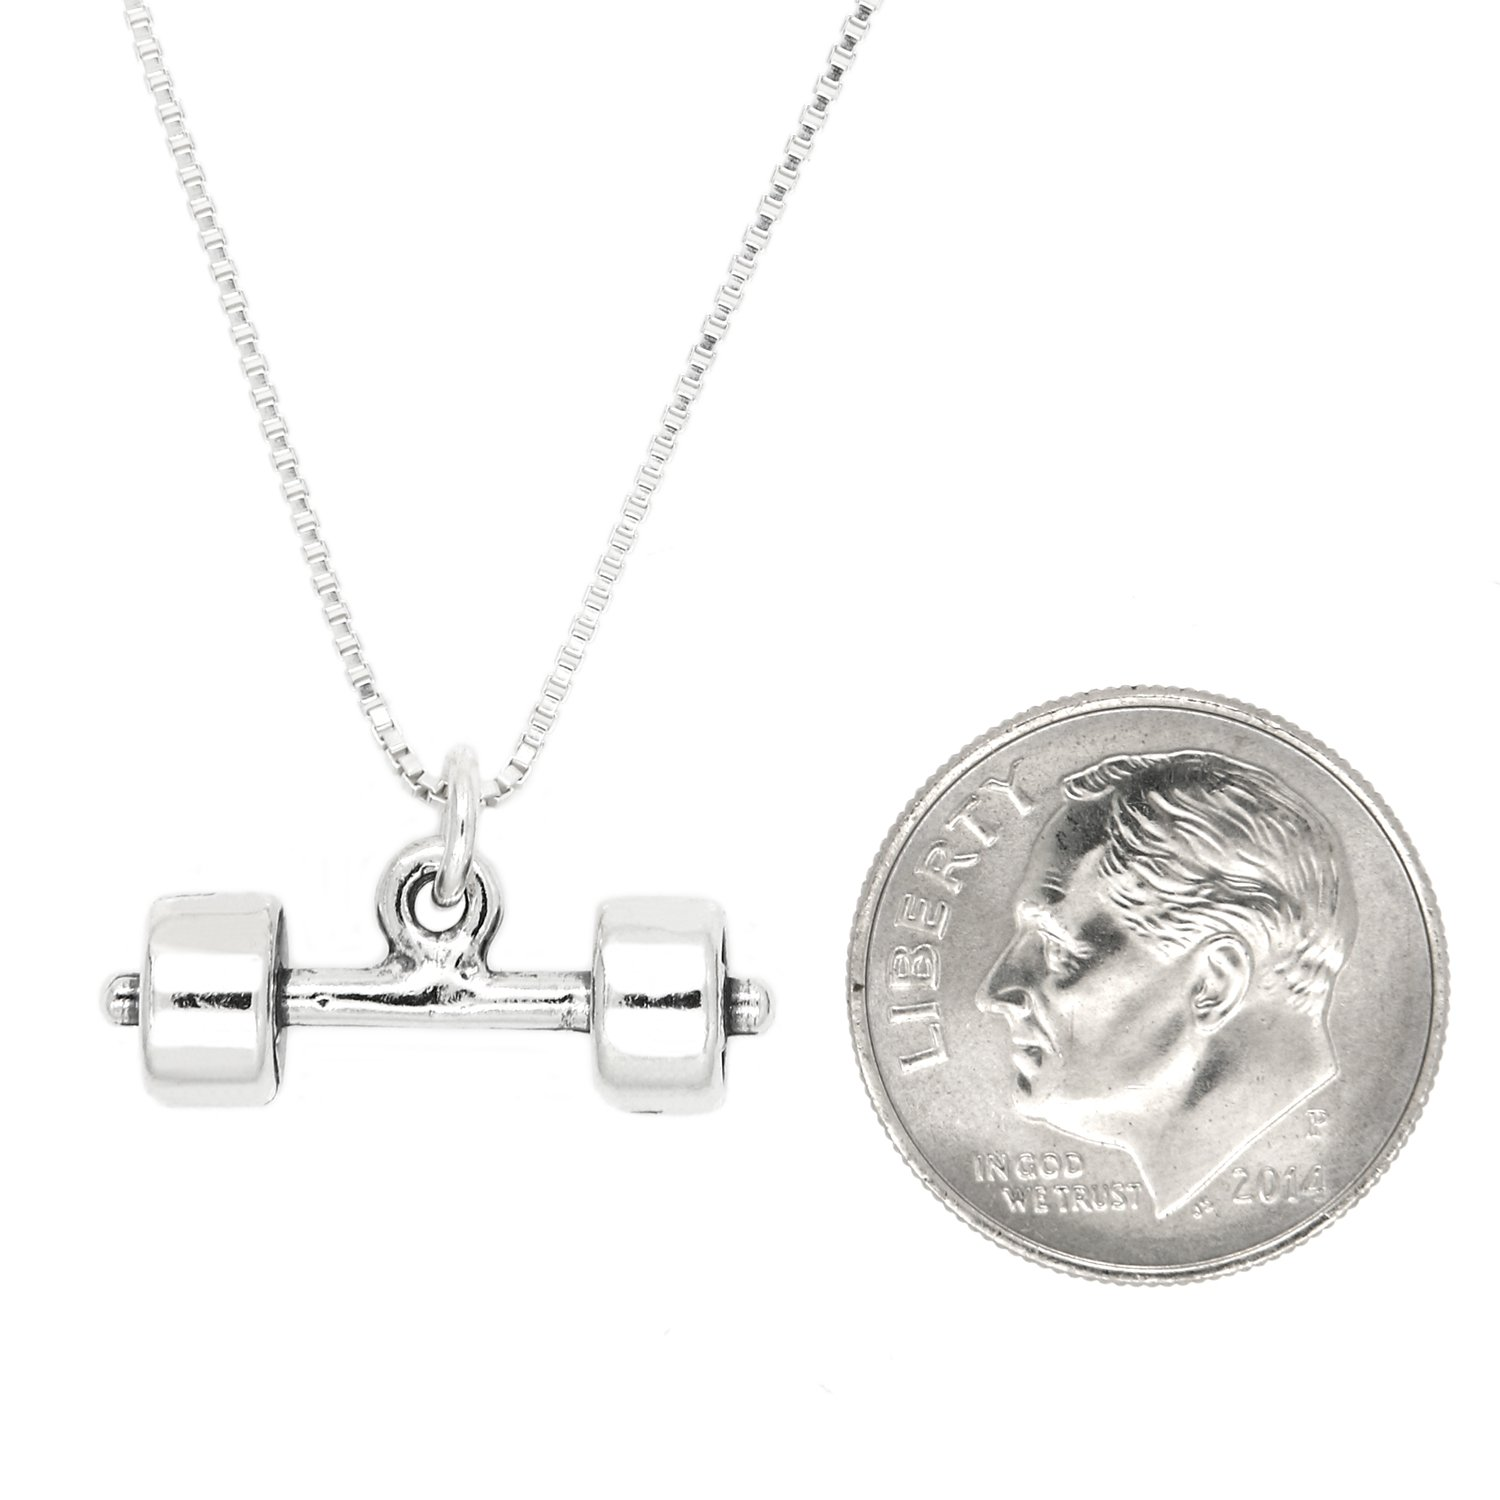 Sterling Silver Oxidized 3D Barbell Dumbbell Weight with Polished Box Chain Necklace